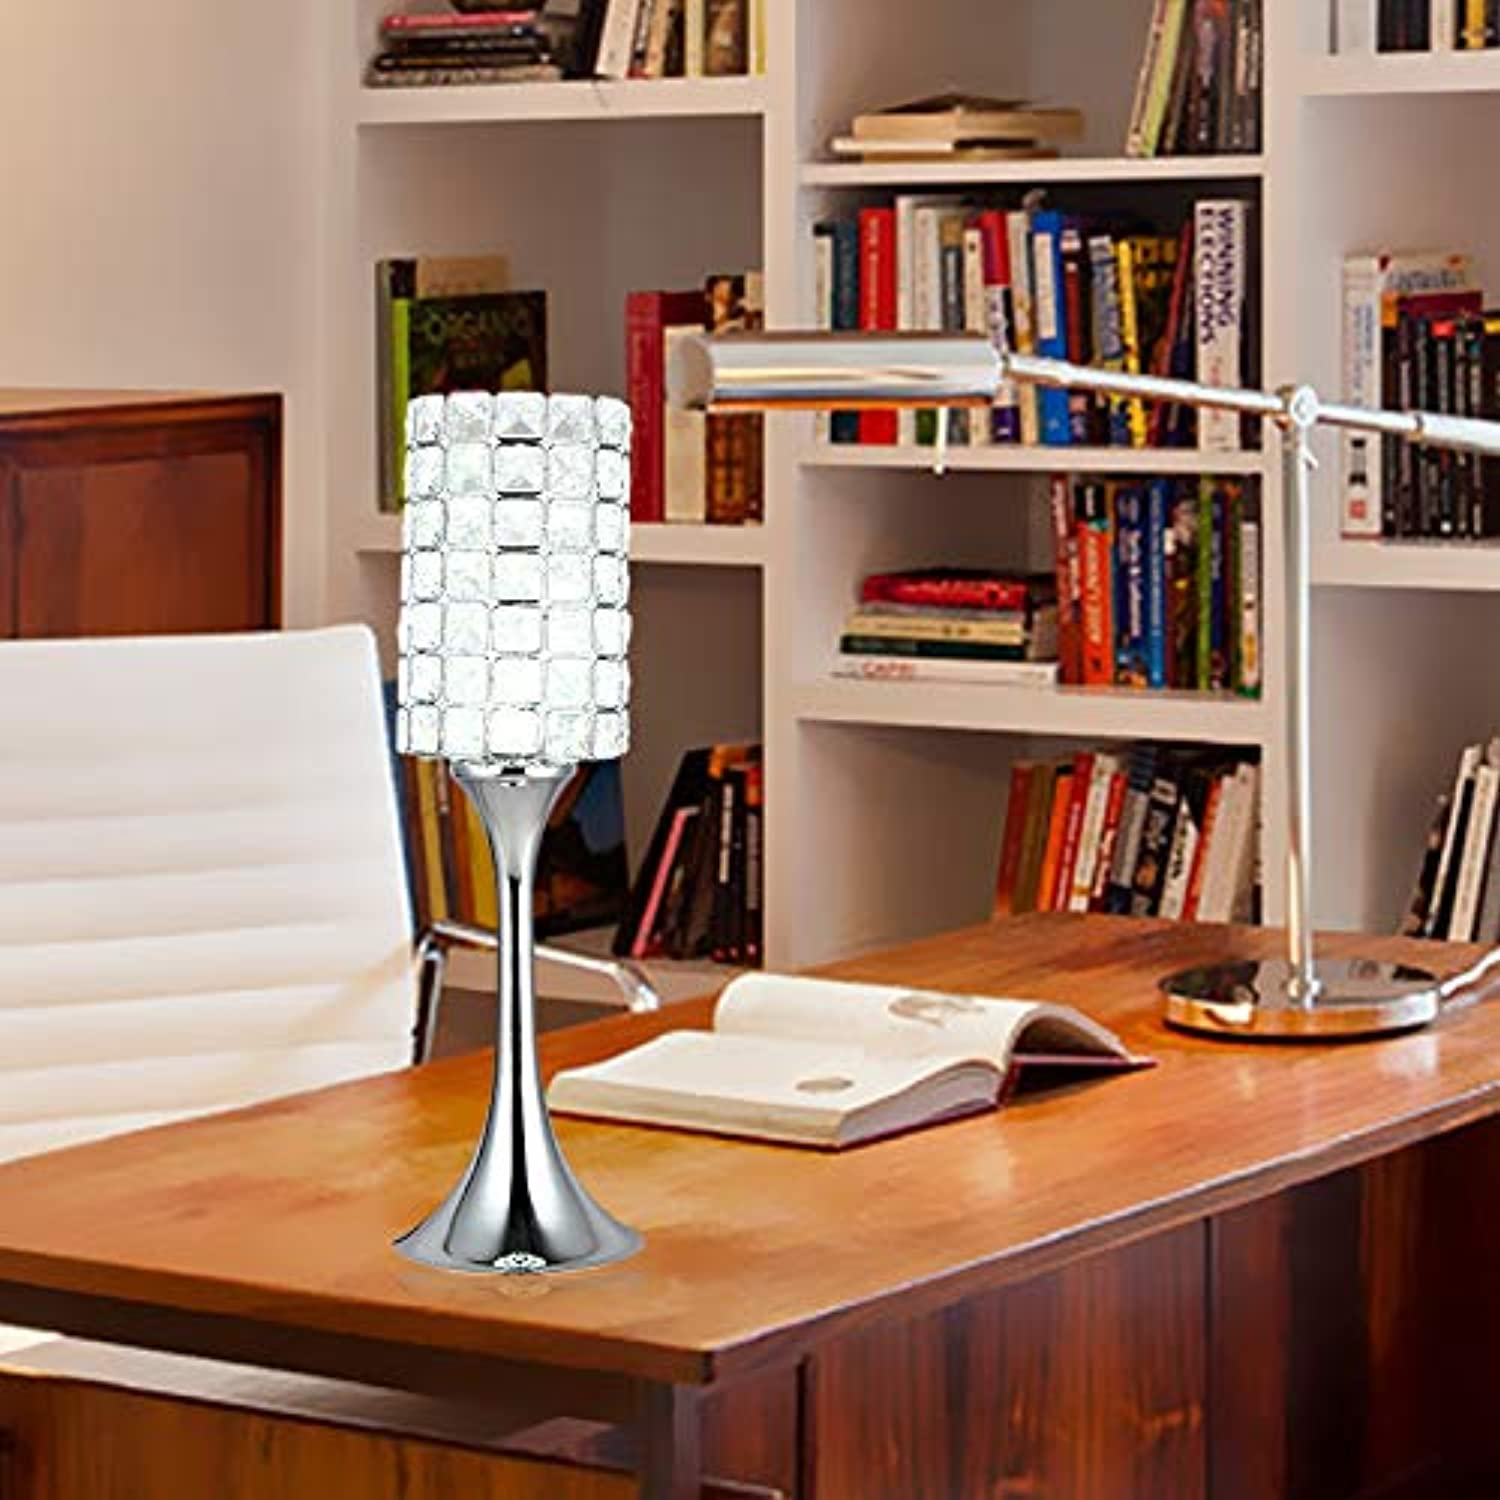 Tisch- & Nachttischlampen Schreibtischlampenbedside And Table Lamps Desk Lampsmodern Minimalist Personality Crystal Table Lamp Luxury Living Room Bedroom Creative Fashion Study Decoration Led